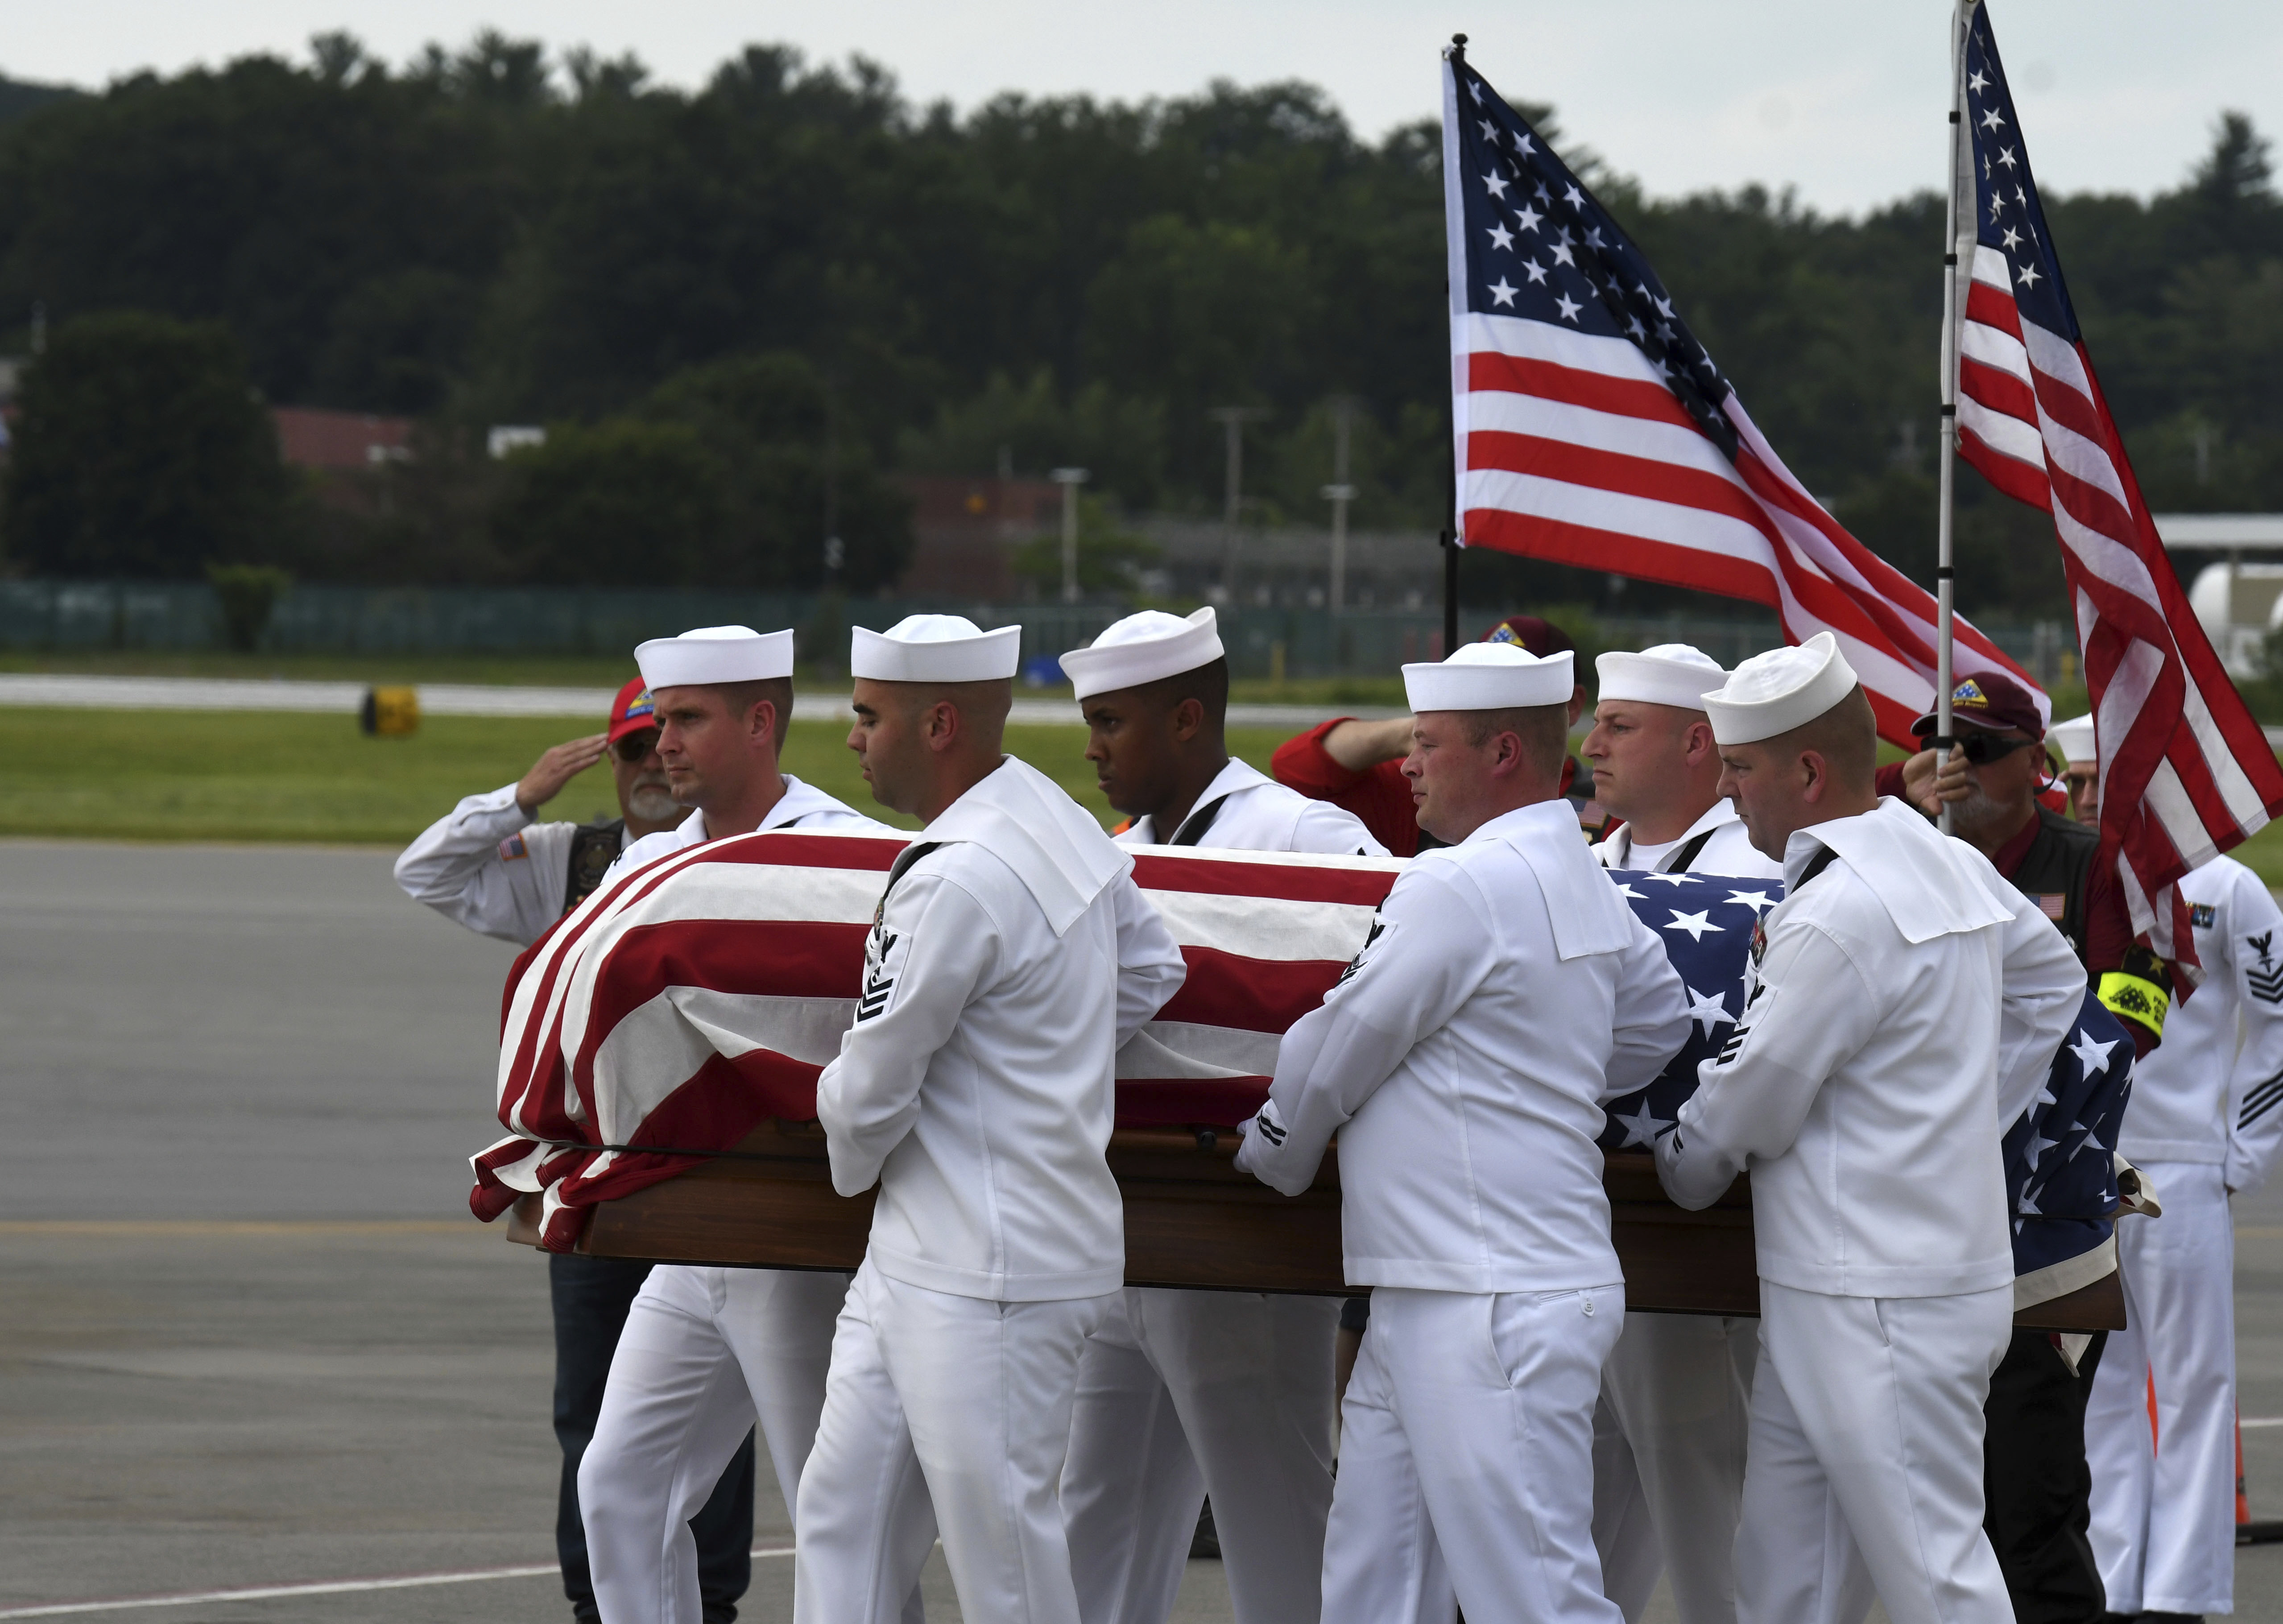 Remains of Upstate NY sailor killed in Pearl Harbor attack come home